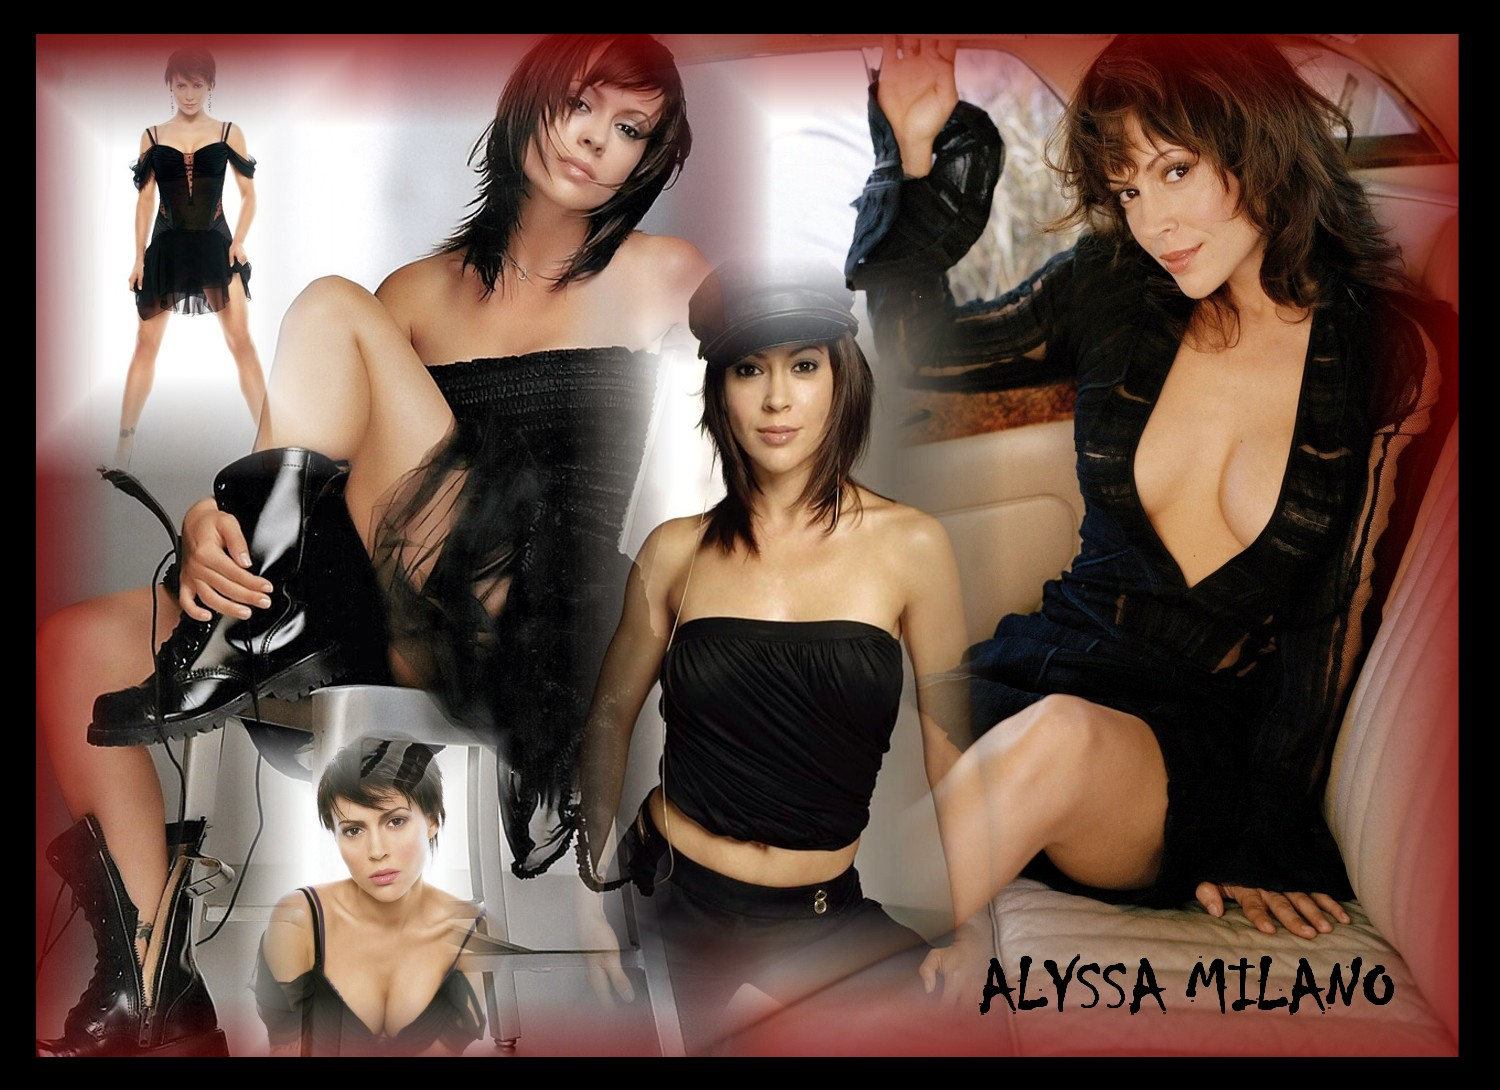 alyssa milano wallpaper female